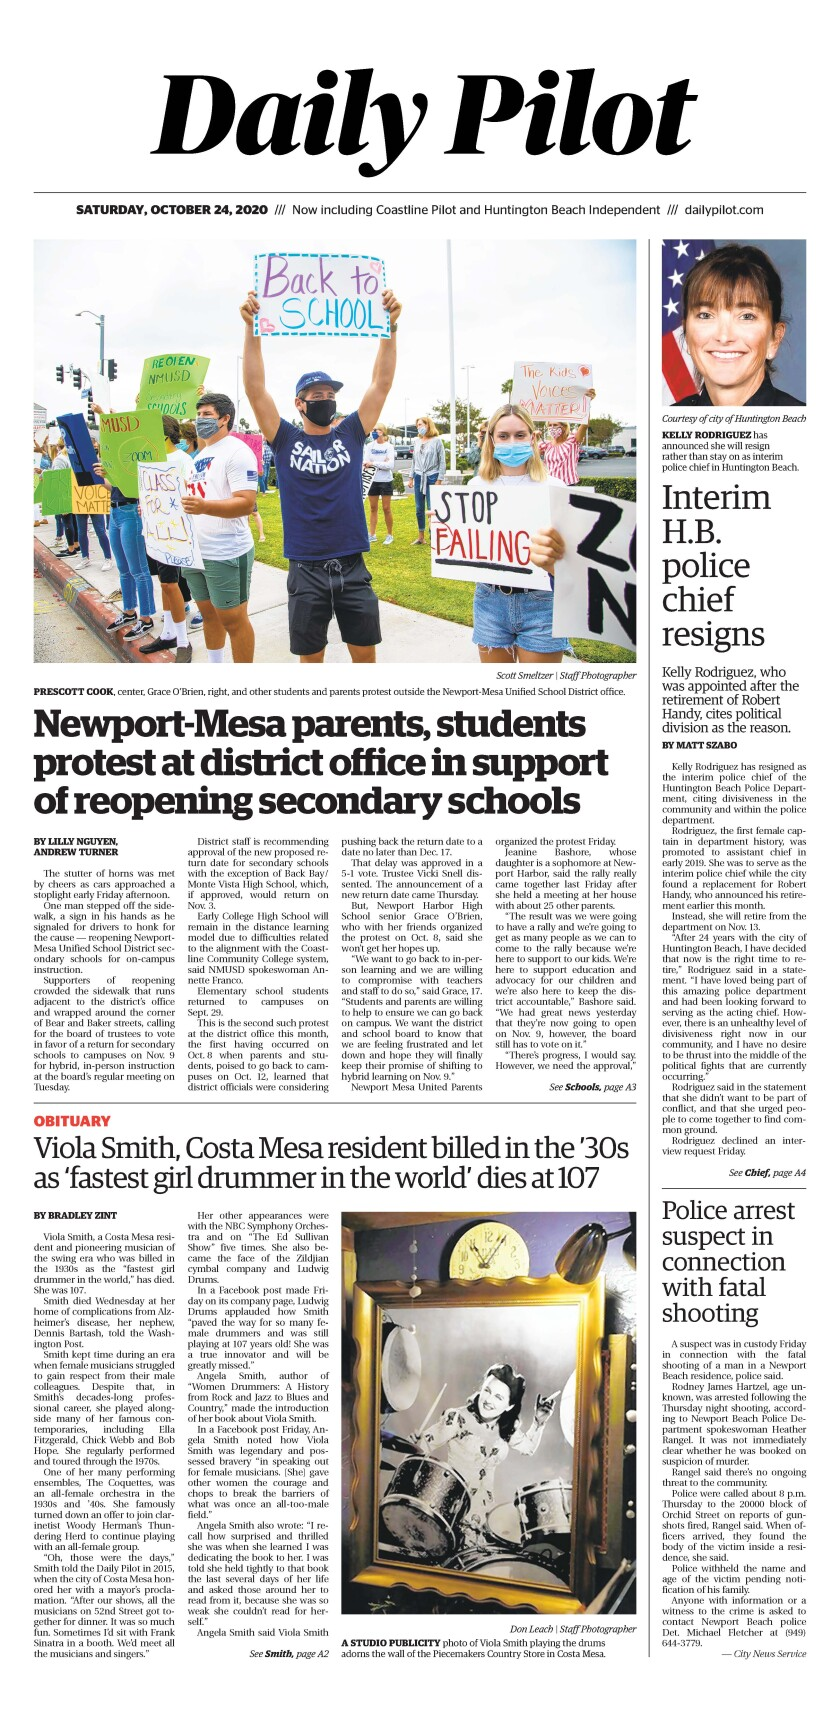 Front page of Daily Pilot e-newspaper for Saturday, Oct. 24, 2020